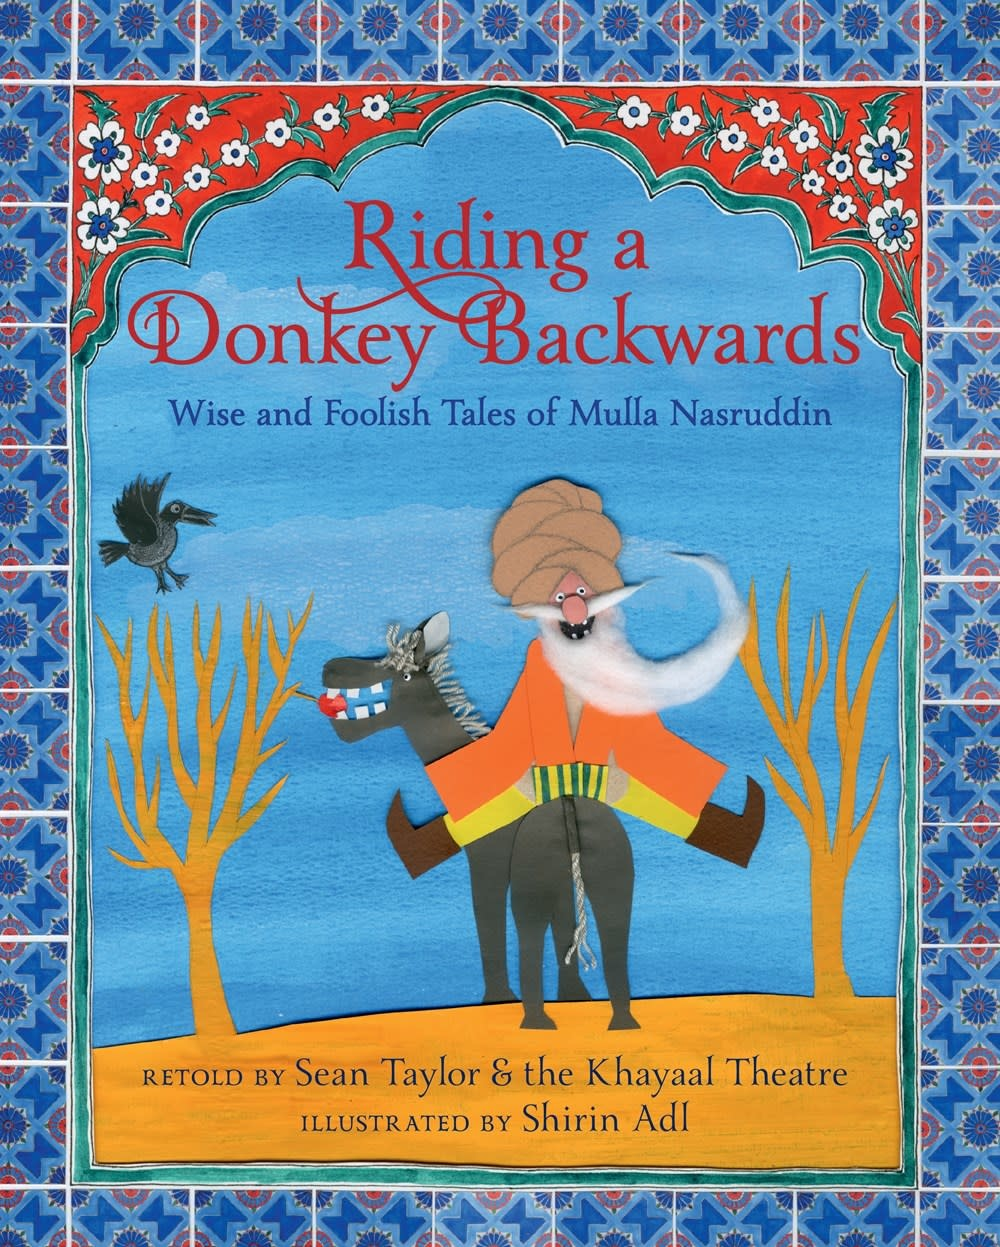 Candlewick Riding a Donkey Backwards: ...Tales of Mulla Nasruddin